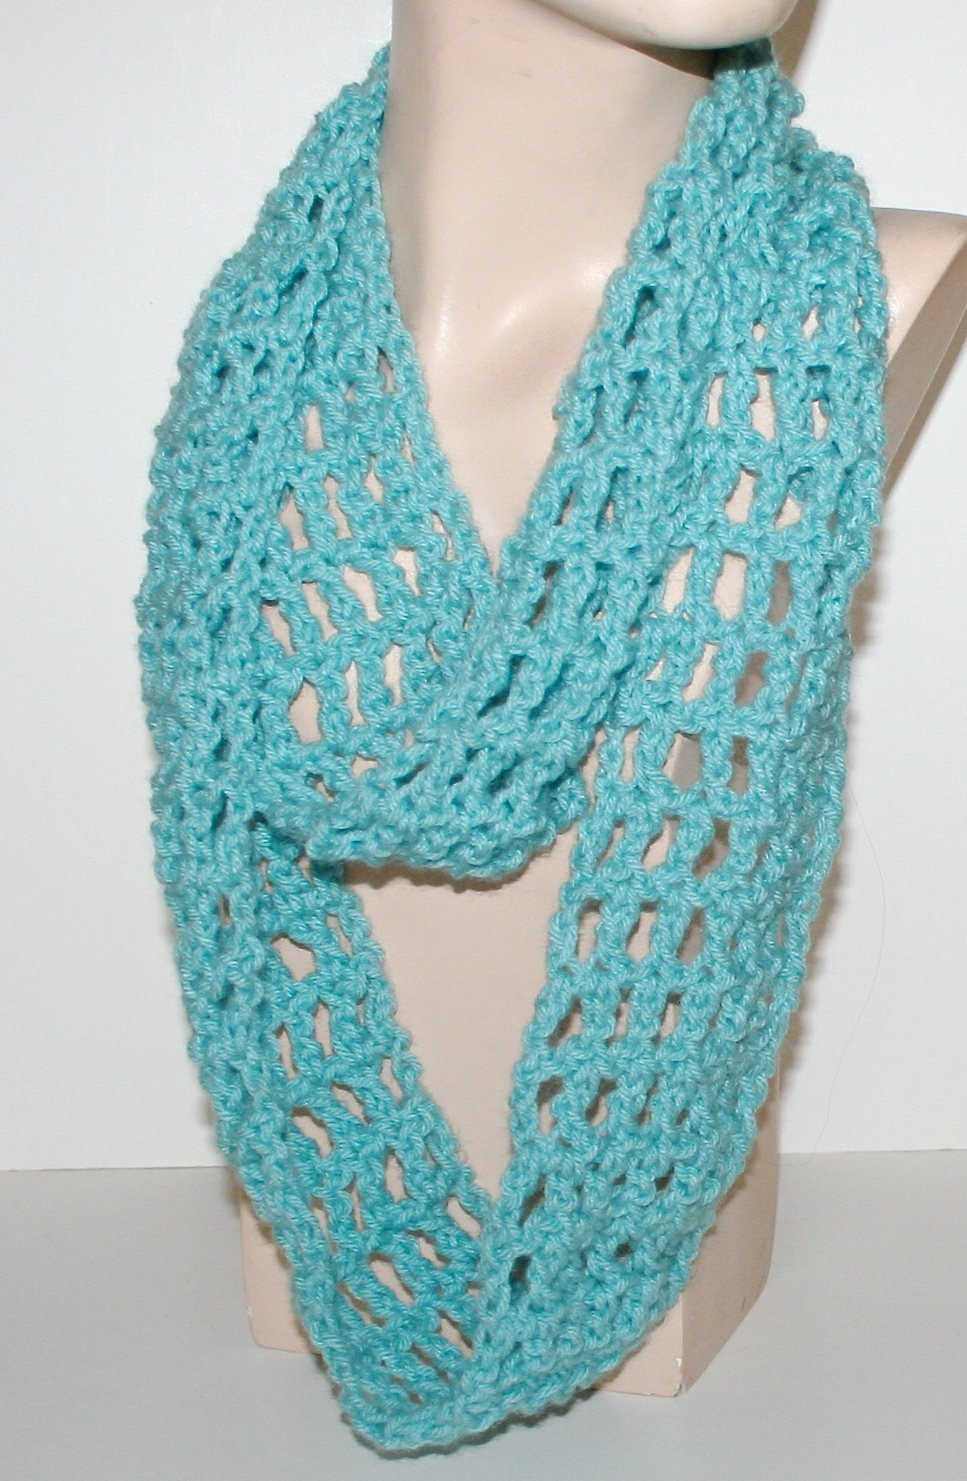 Easy Crochet Scarf Patterns Unique Crochet Scarf Pattern Easy Tutorial Light Airy Infinity Of Attractive 42 Ideas Easy Crochet Scarf Patterns